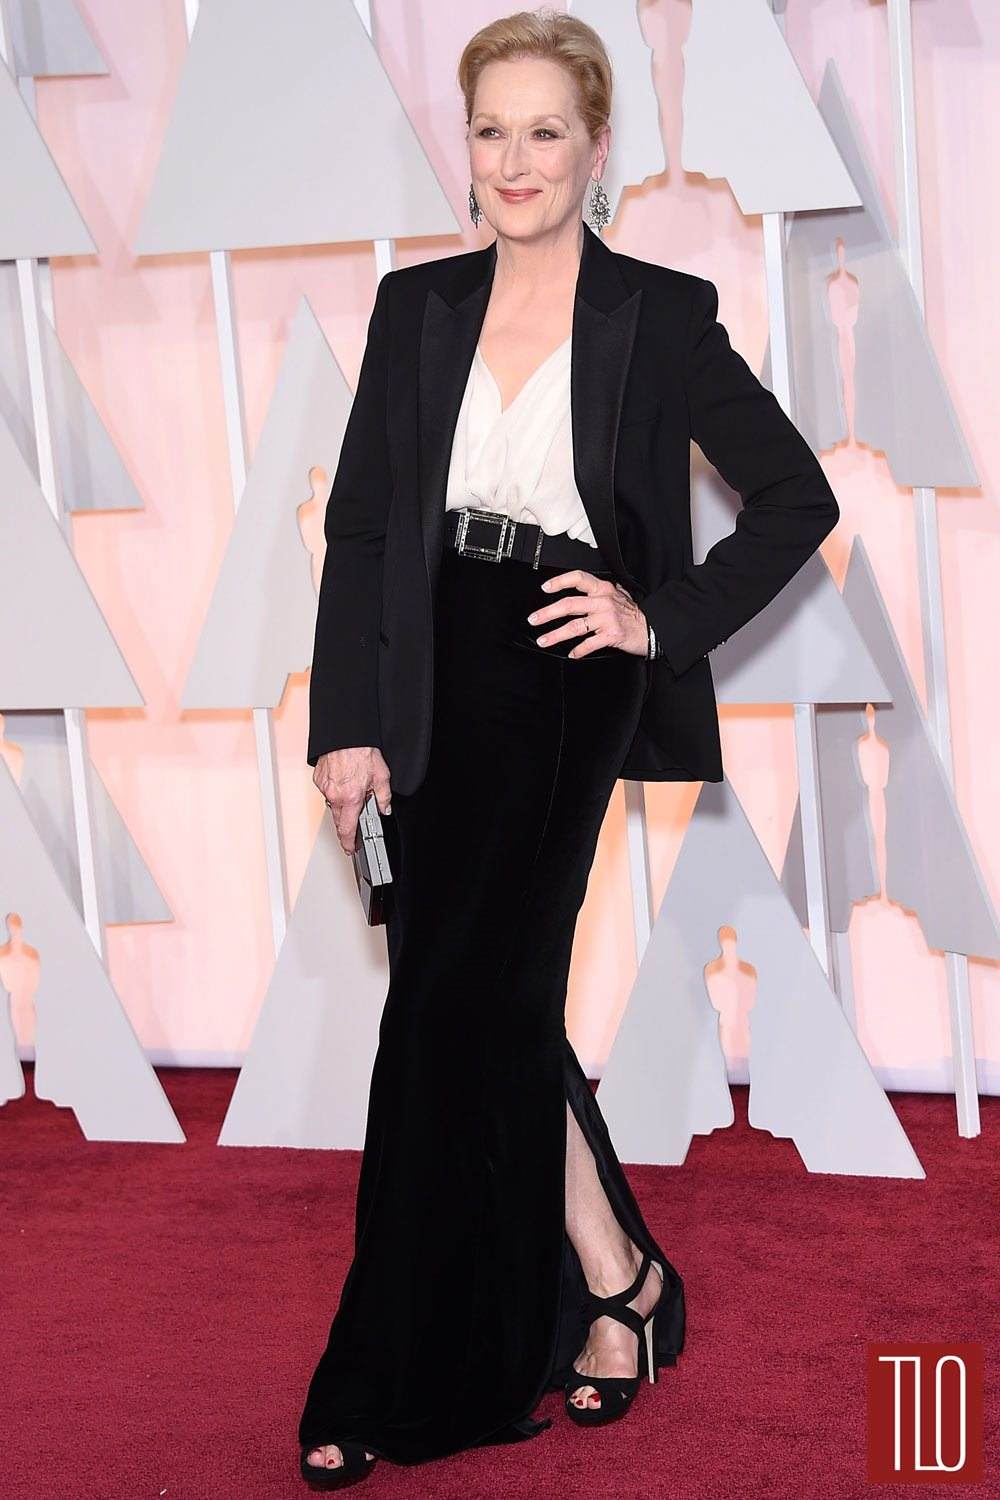 Meryl Streep In Lanvin At The Oscars Tom Lorenzo